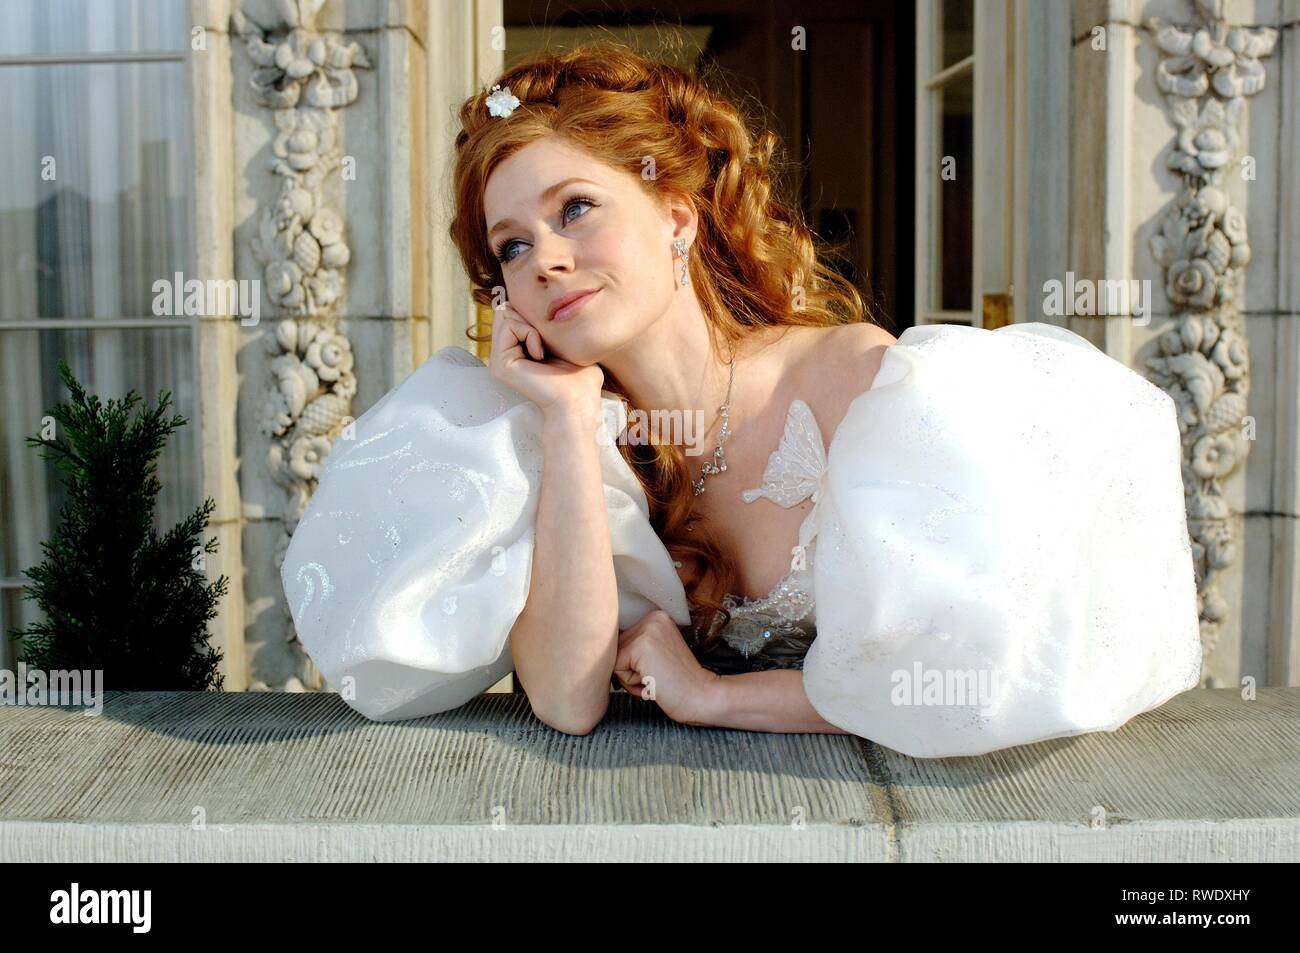 AMY ADAMS, verzaubert, 2007 Stockbild